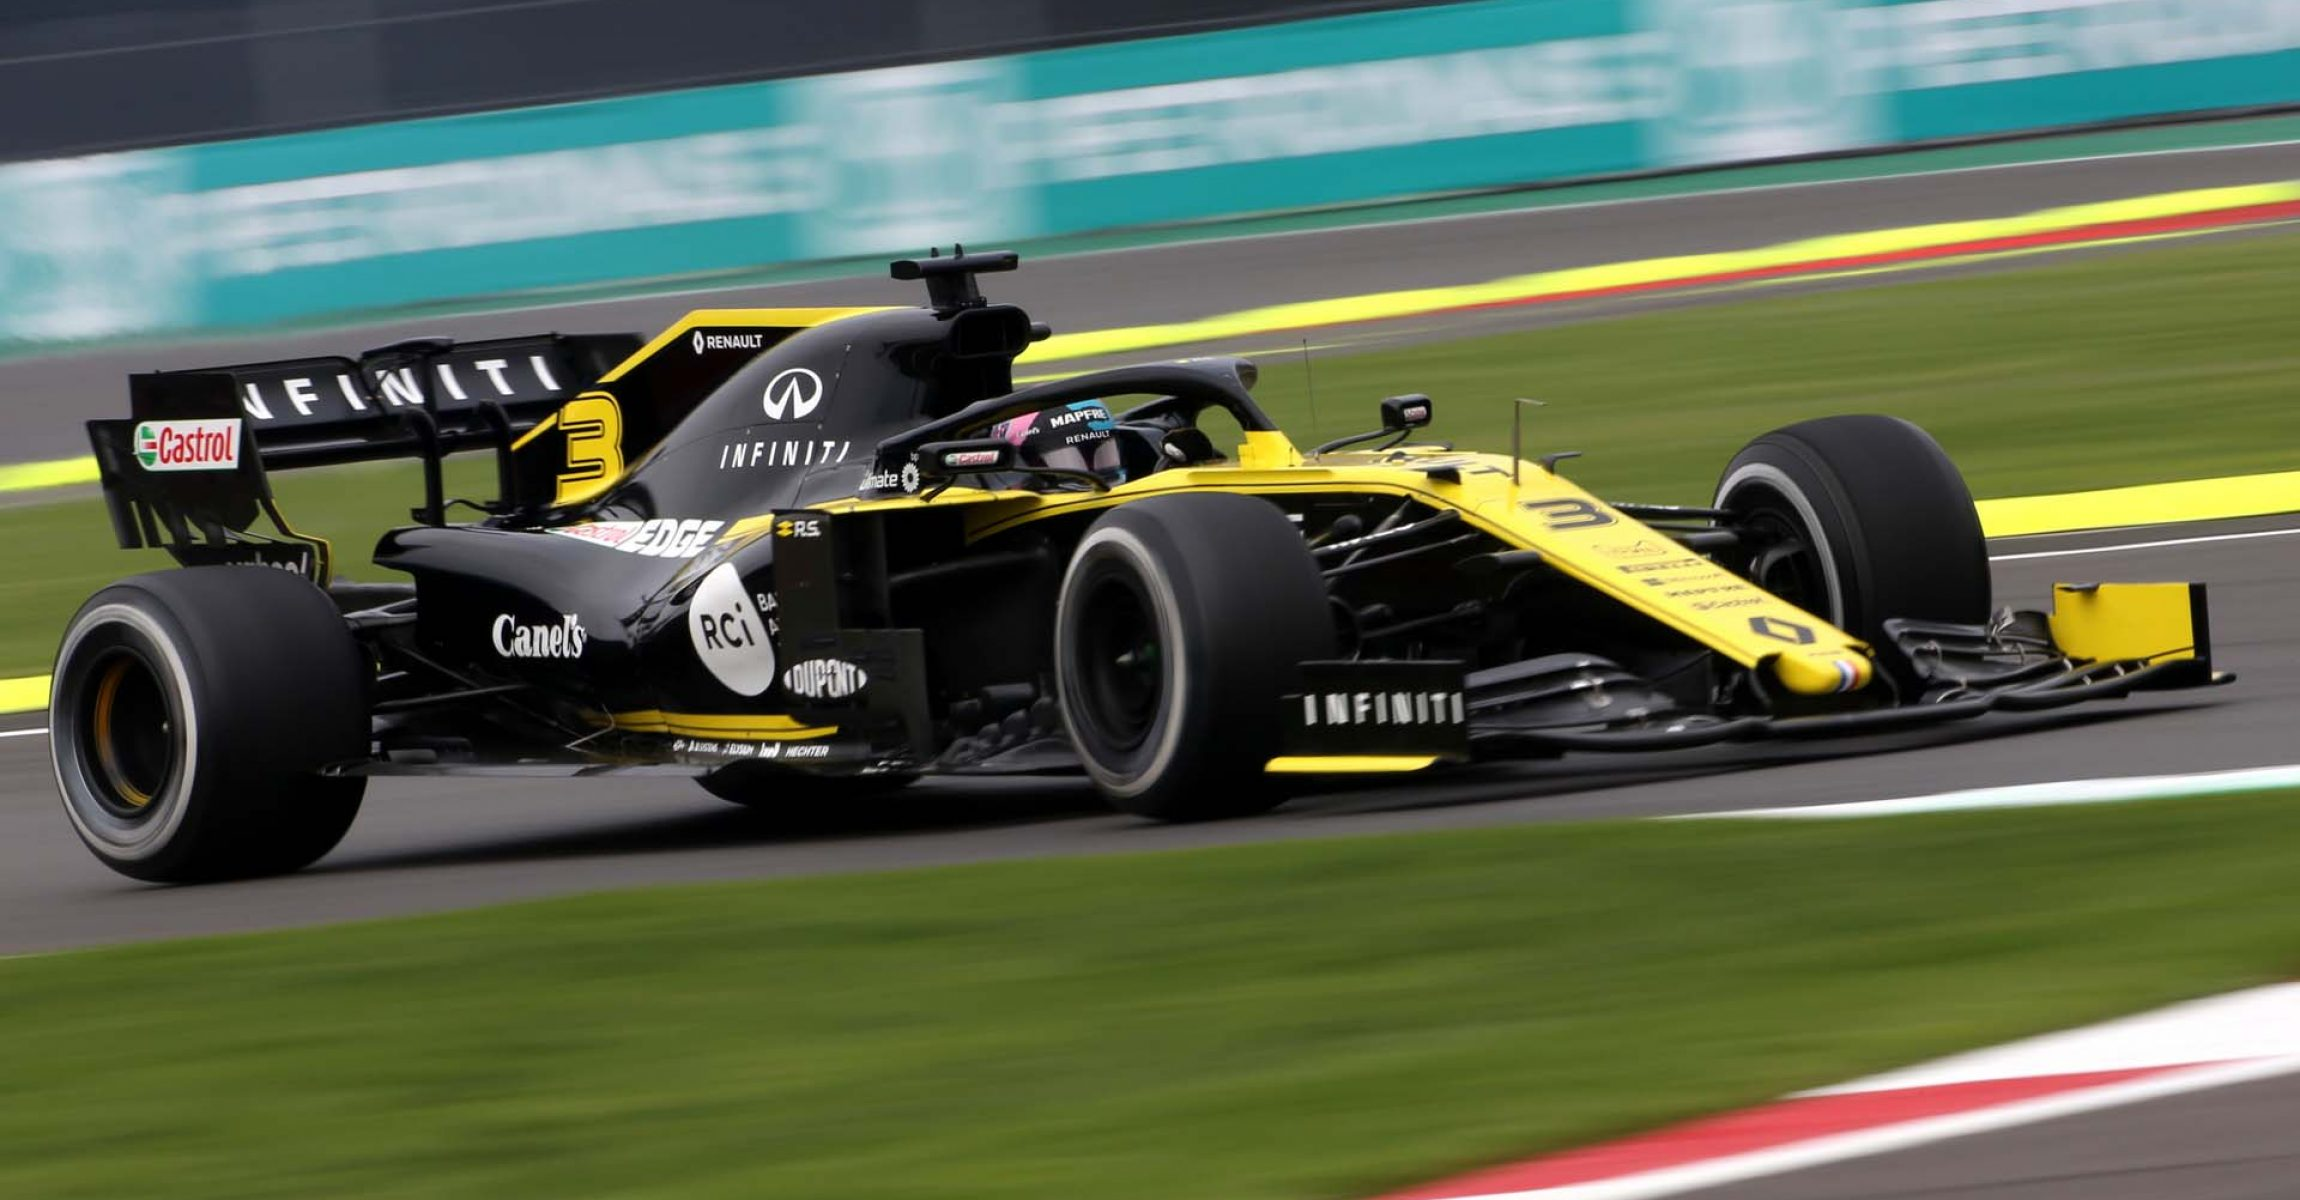 Daniel Ricciardo (AUS) Renault F1 Team RS19. Mexican Grand Prix, Friday 25th October 2019. Mexico City, Mexico.